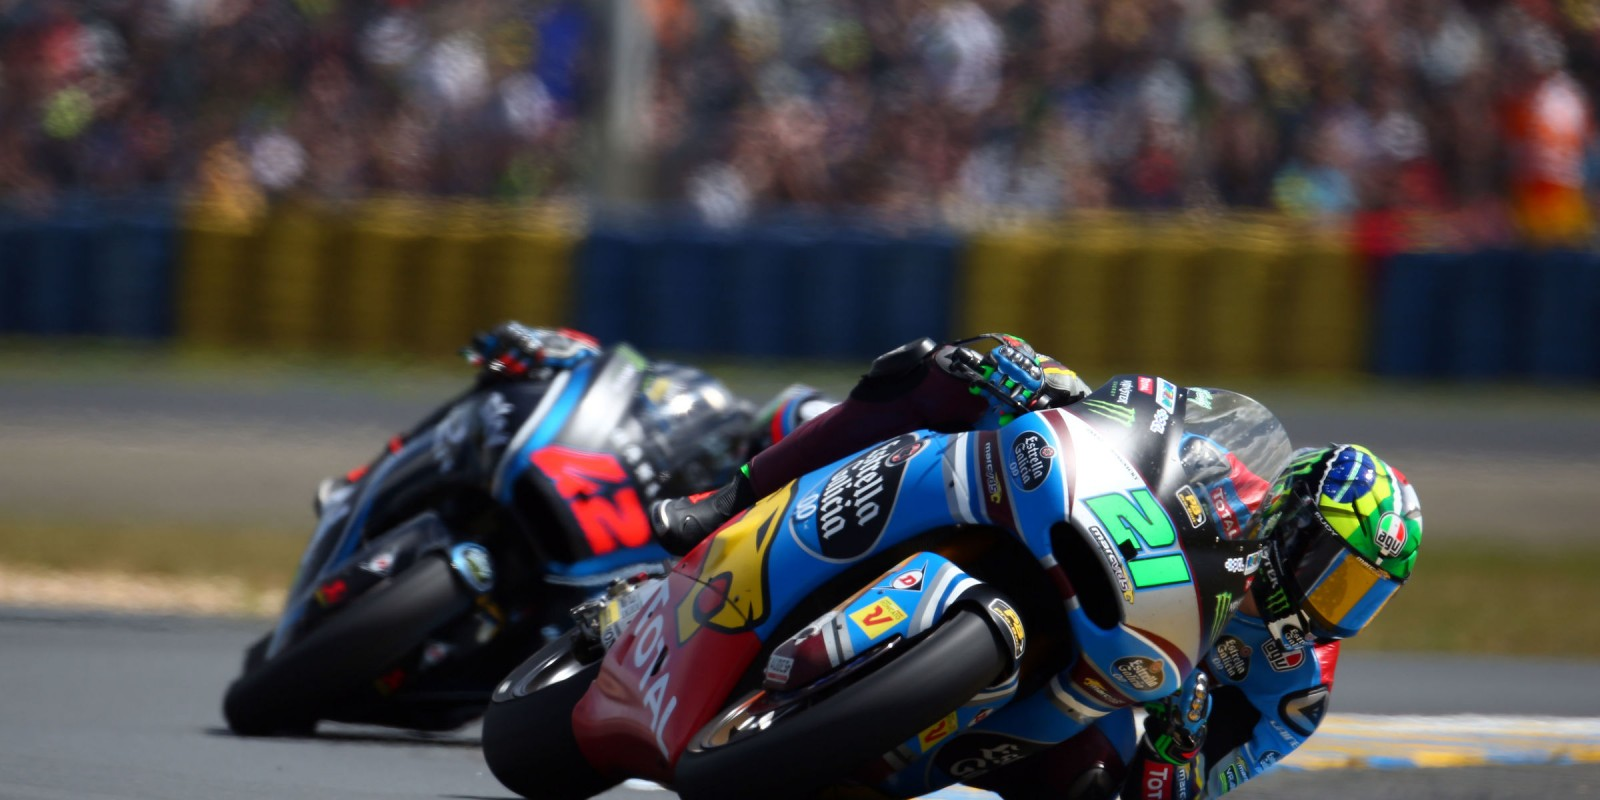 Monster athletes compete in Race 1 Sunday at the 2017 Le Mans MotoGP stop